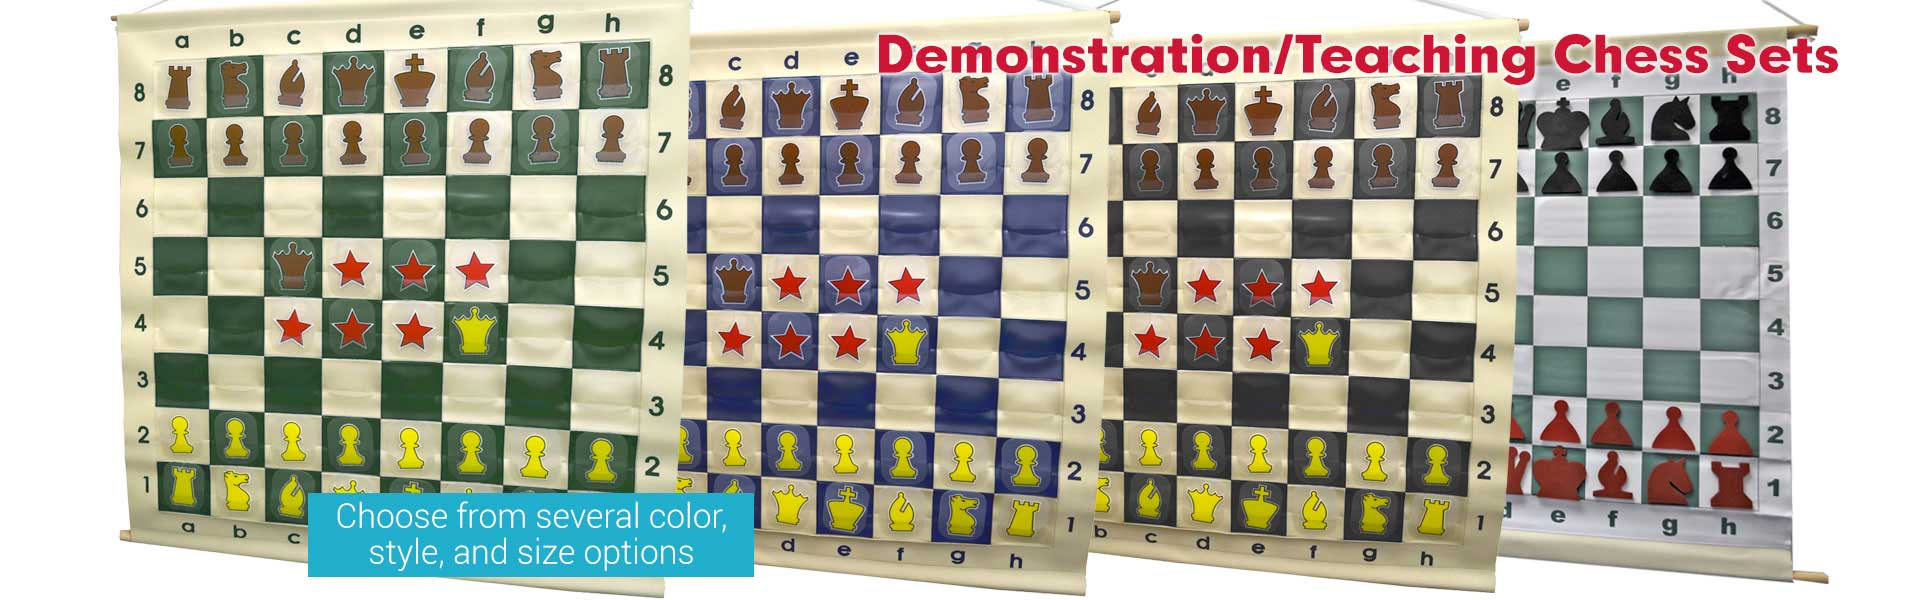 Demo Chess Sets